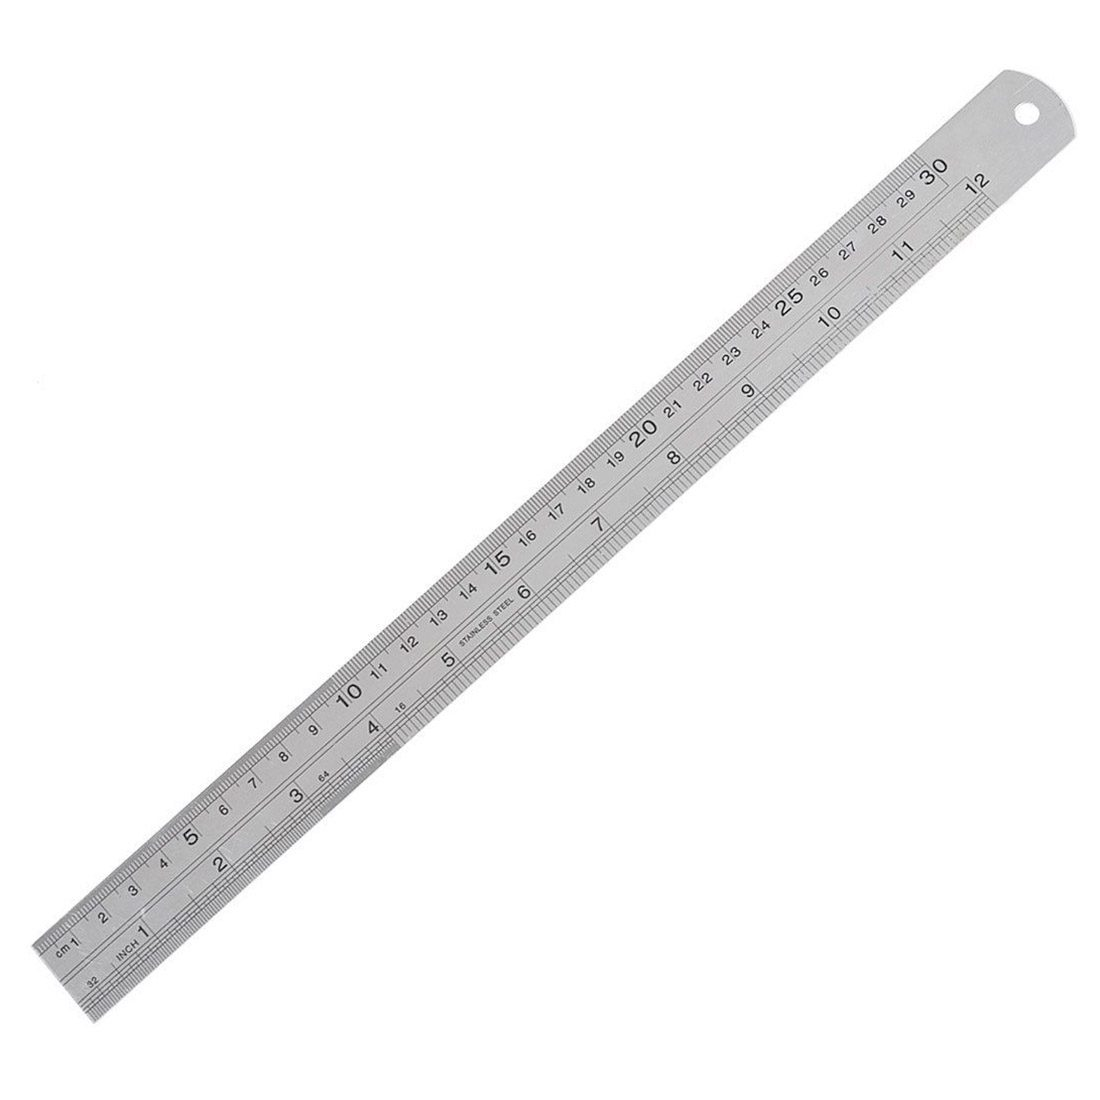 12 Inch Double Sided Metal Steel Measuring Ruler Scale Office Supply